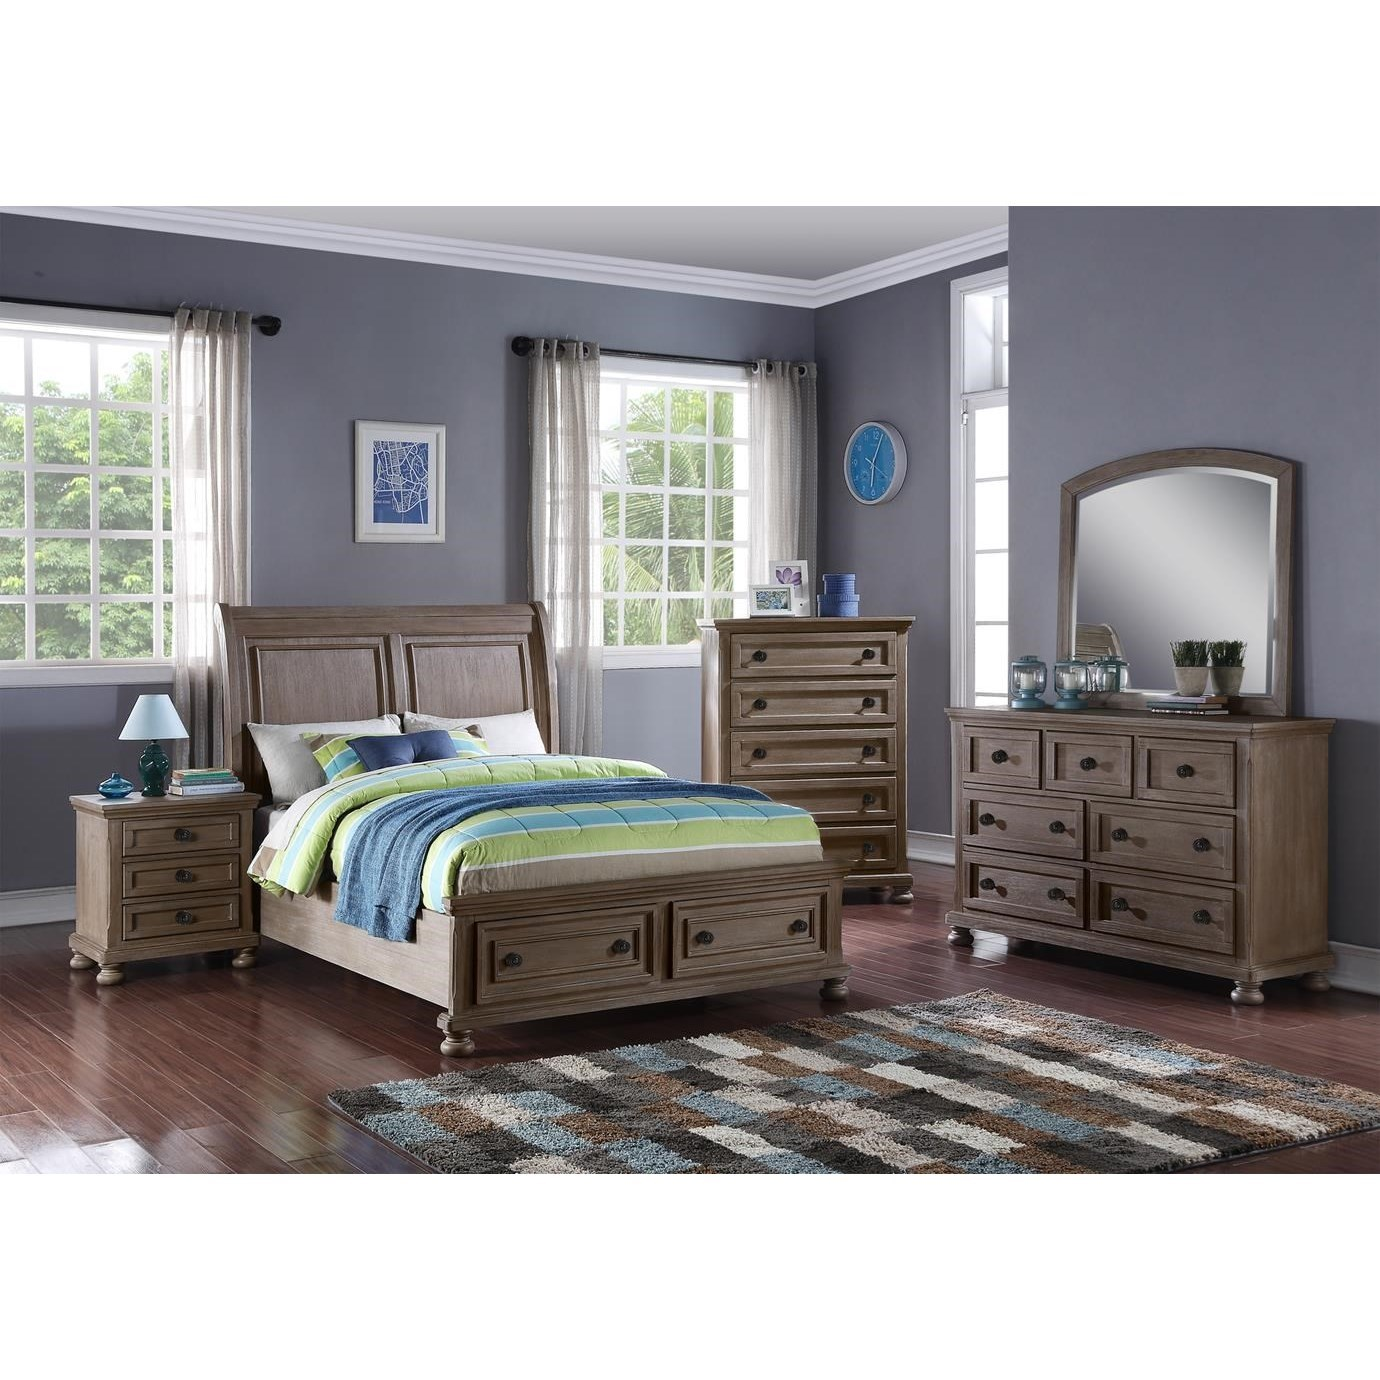 Allegra Full Bedroom Group by New Classic at H.L. Stephens